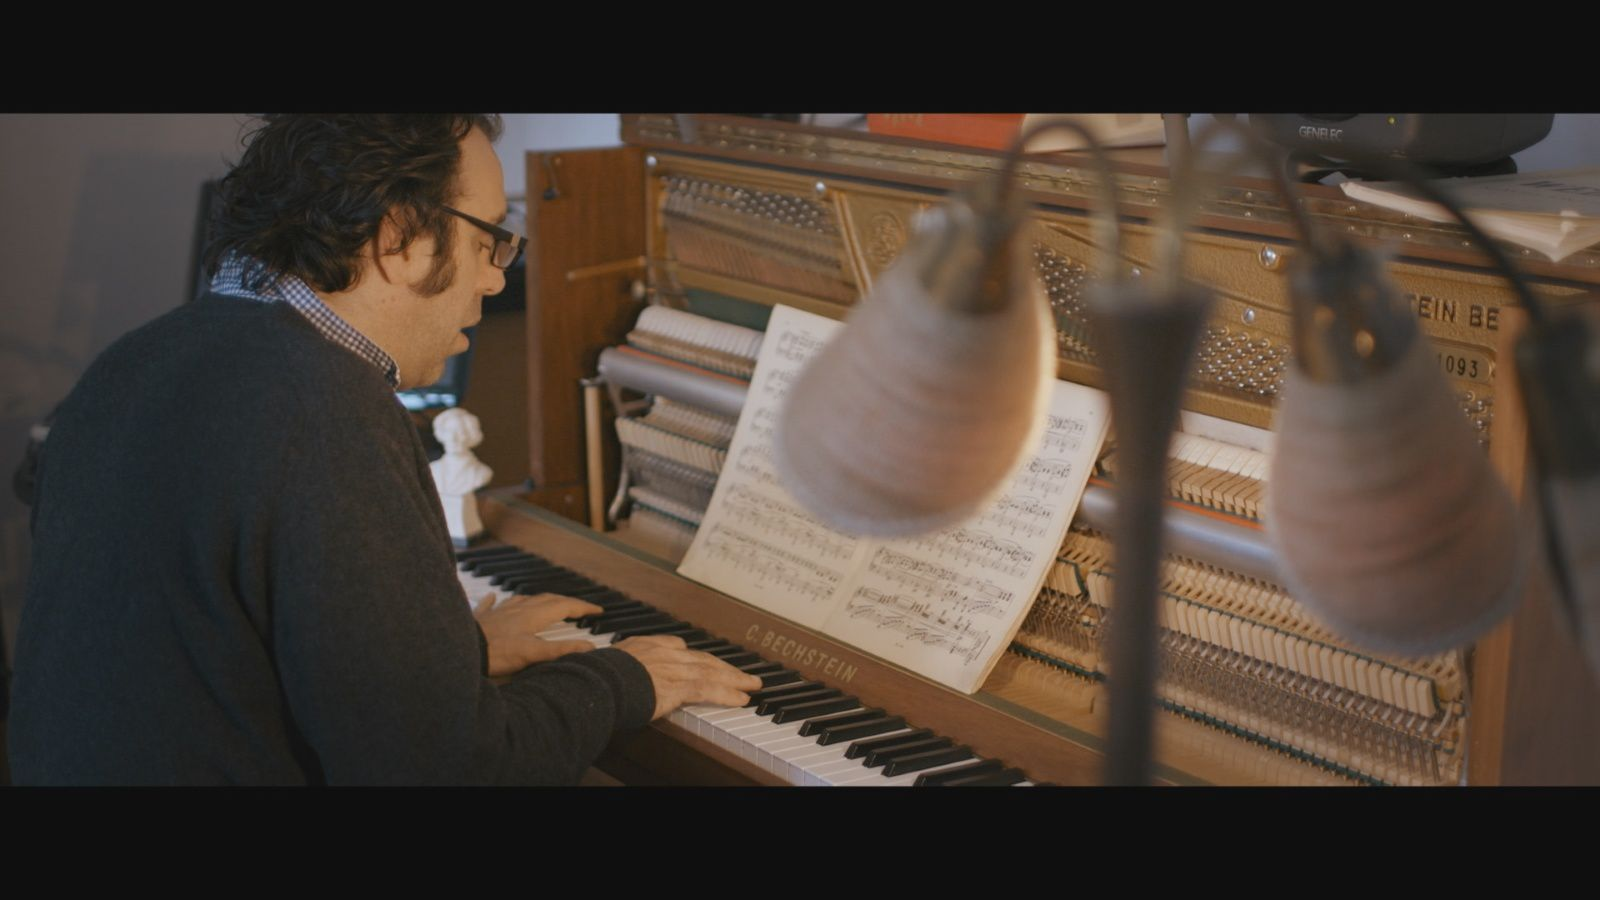 Shut up and play the piano (BANDE-ANNONCE) Documentaire de Philipp Jedicke - Le 3 octobre 2018 au cinéma